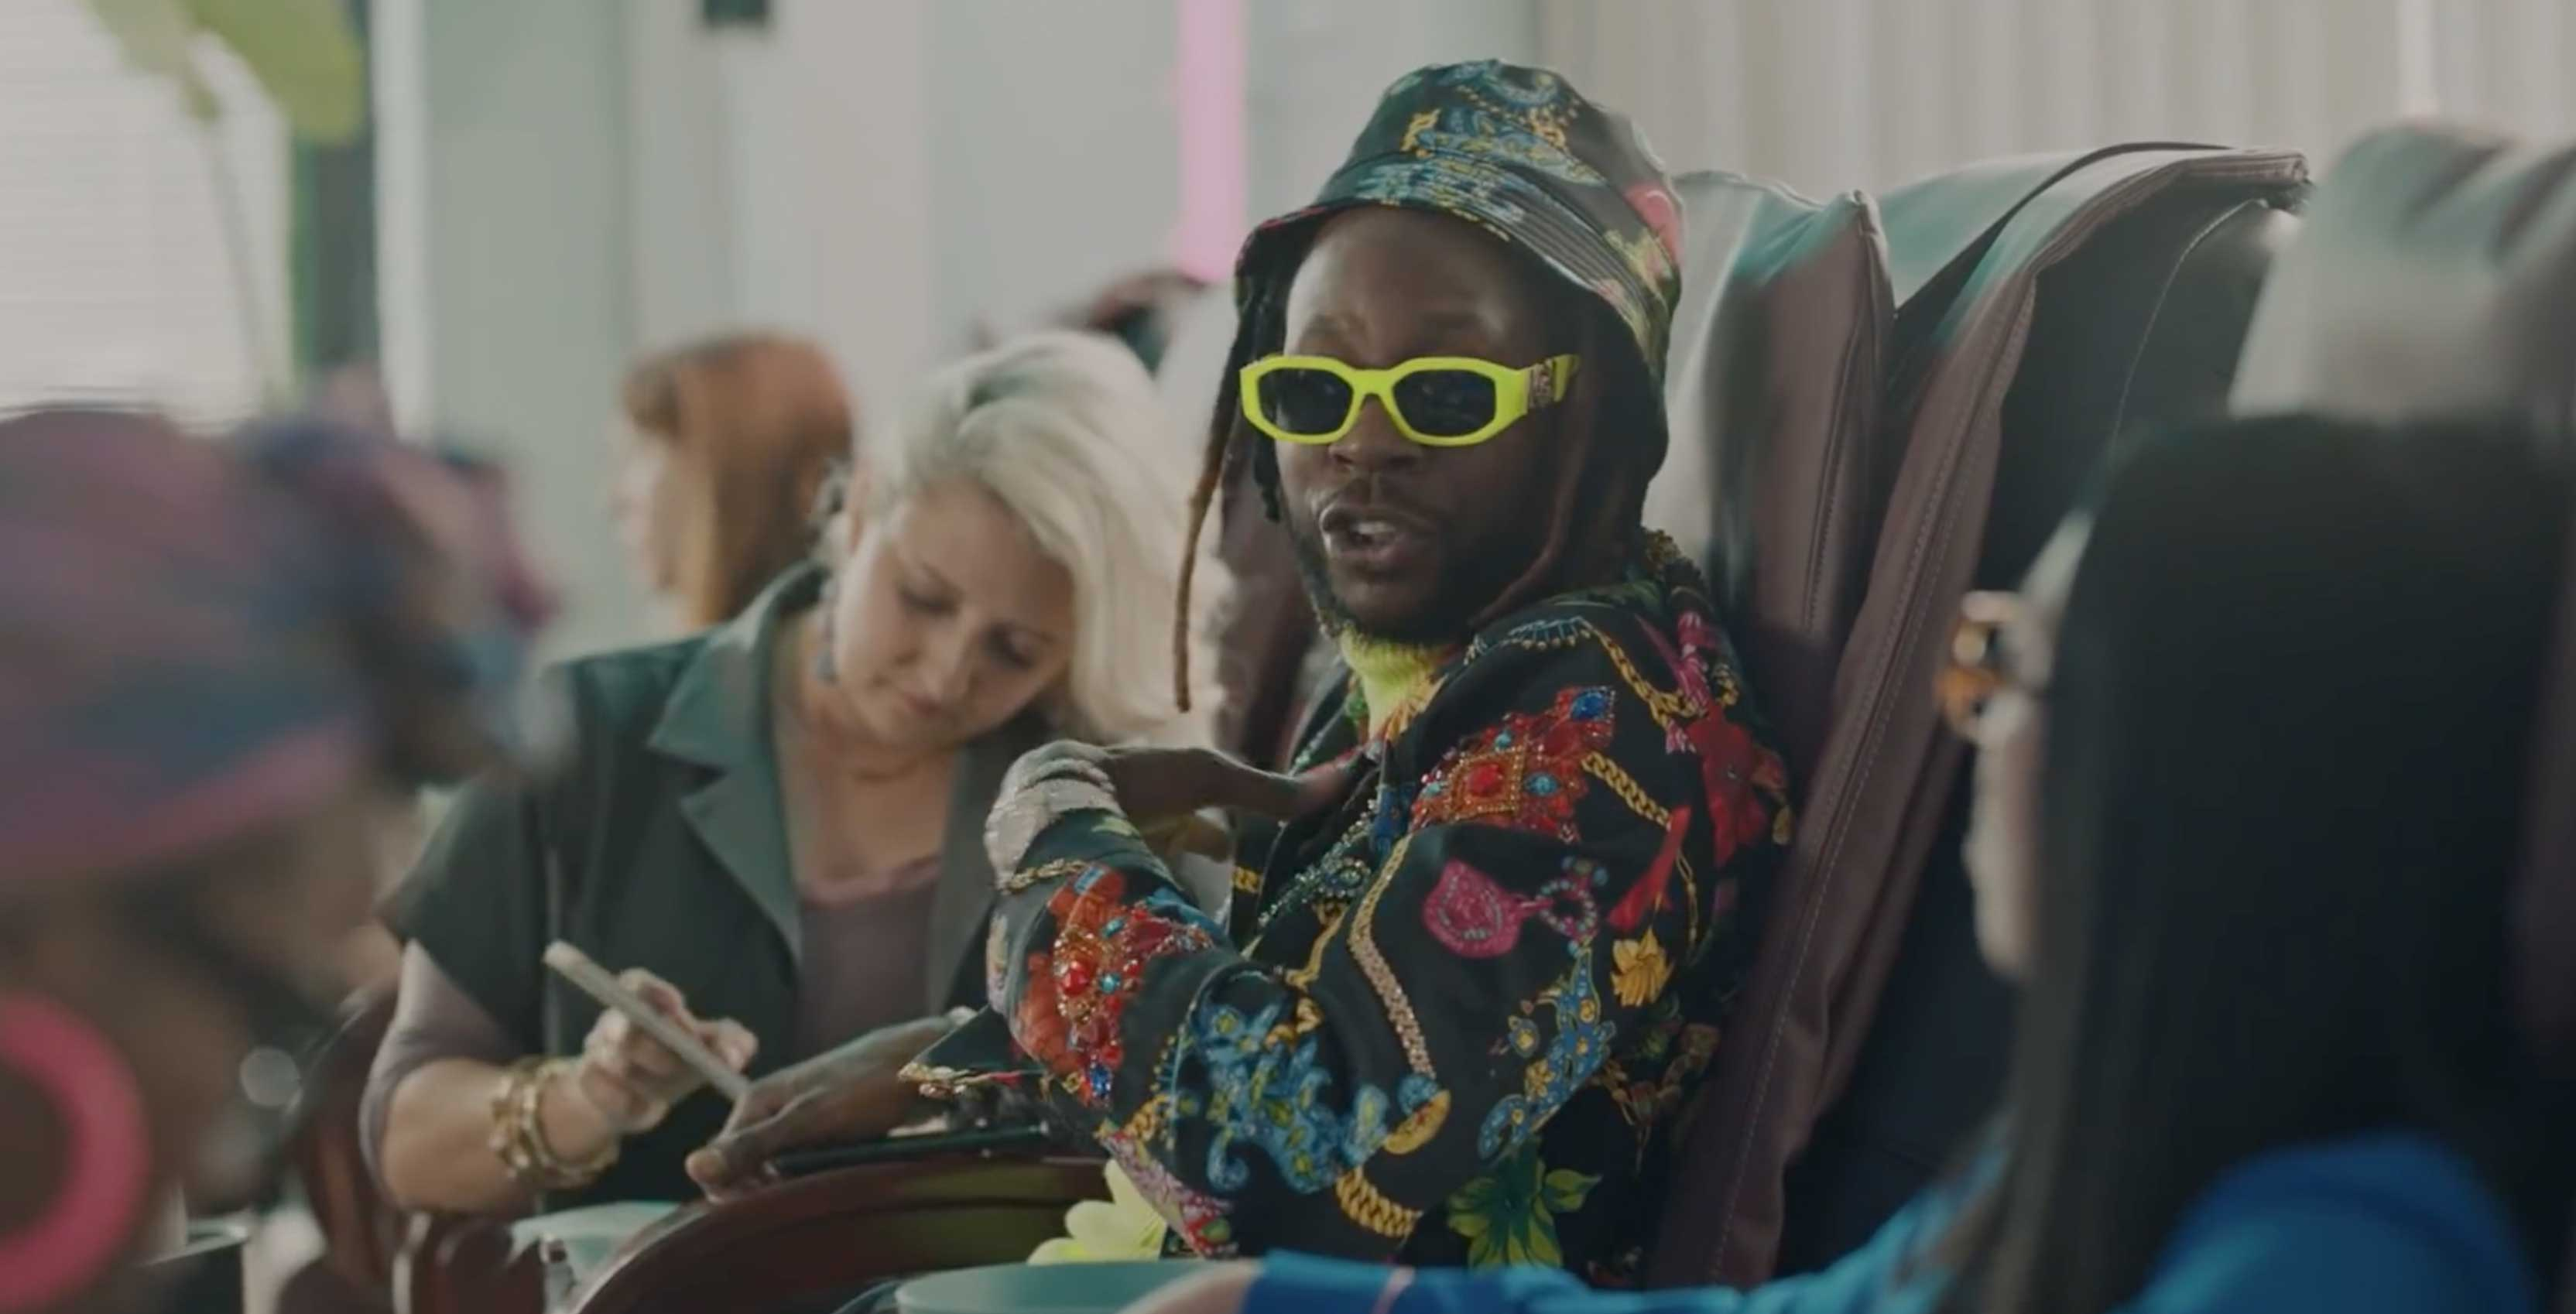 2 Chainz dream phone is a Pixel 3a in new Google ad